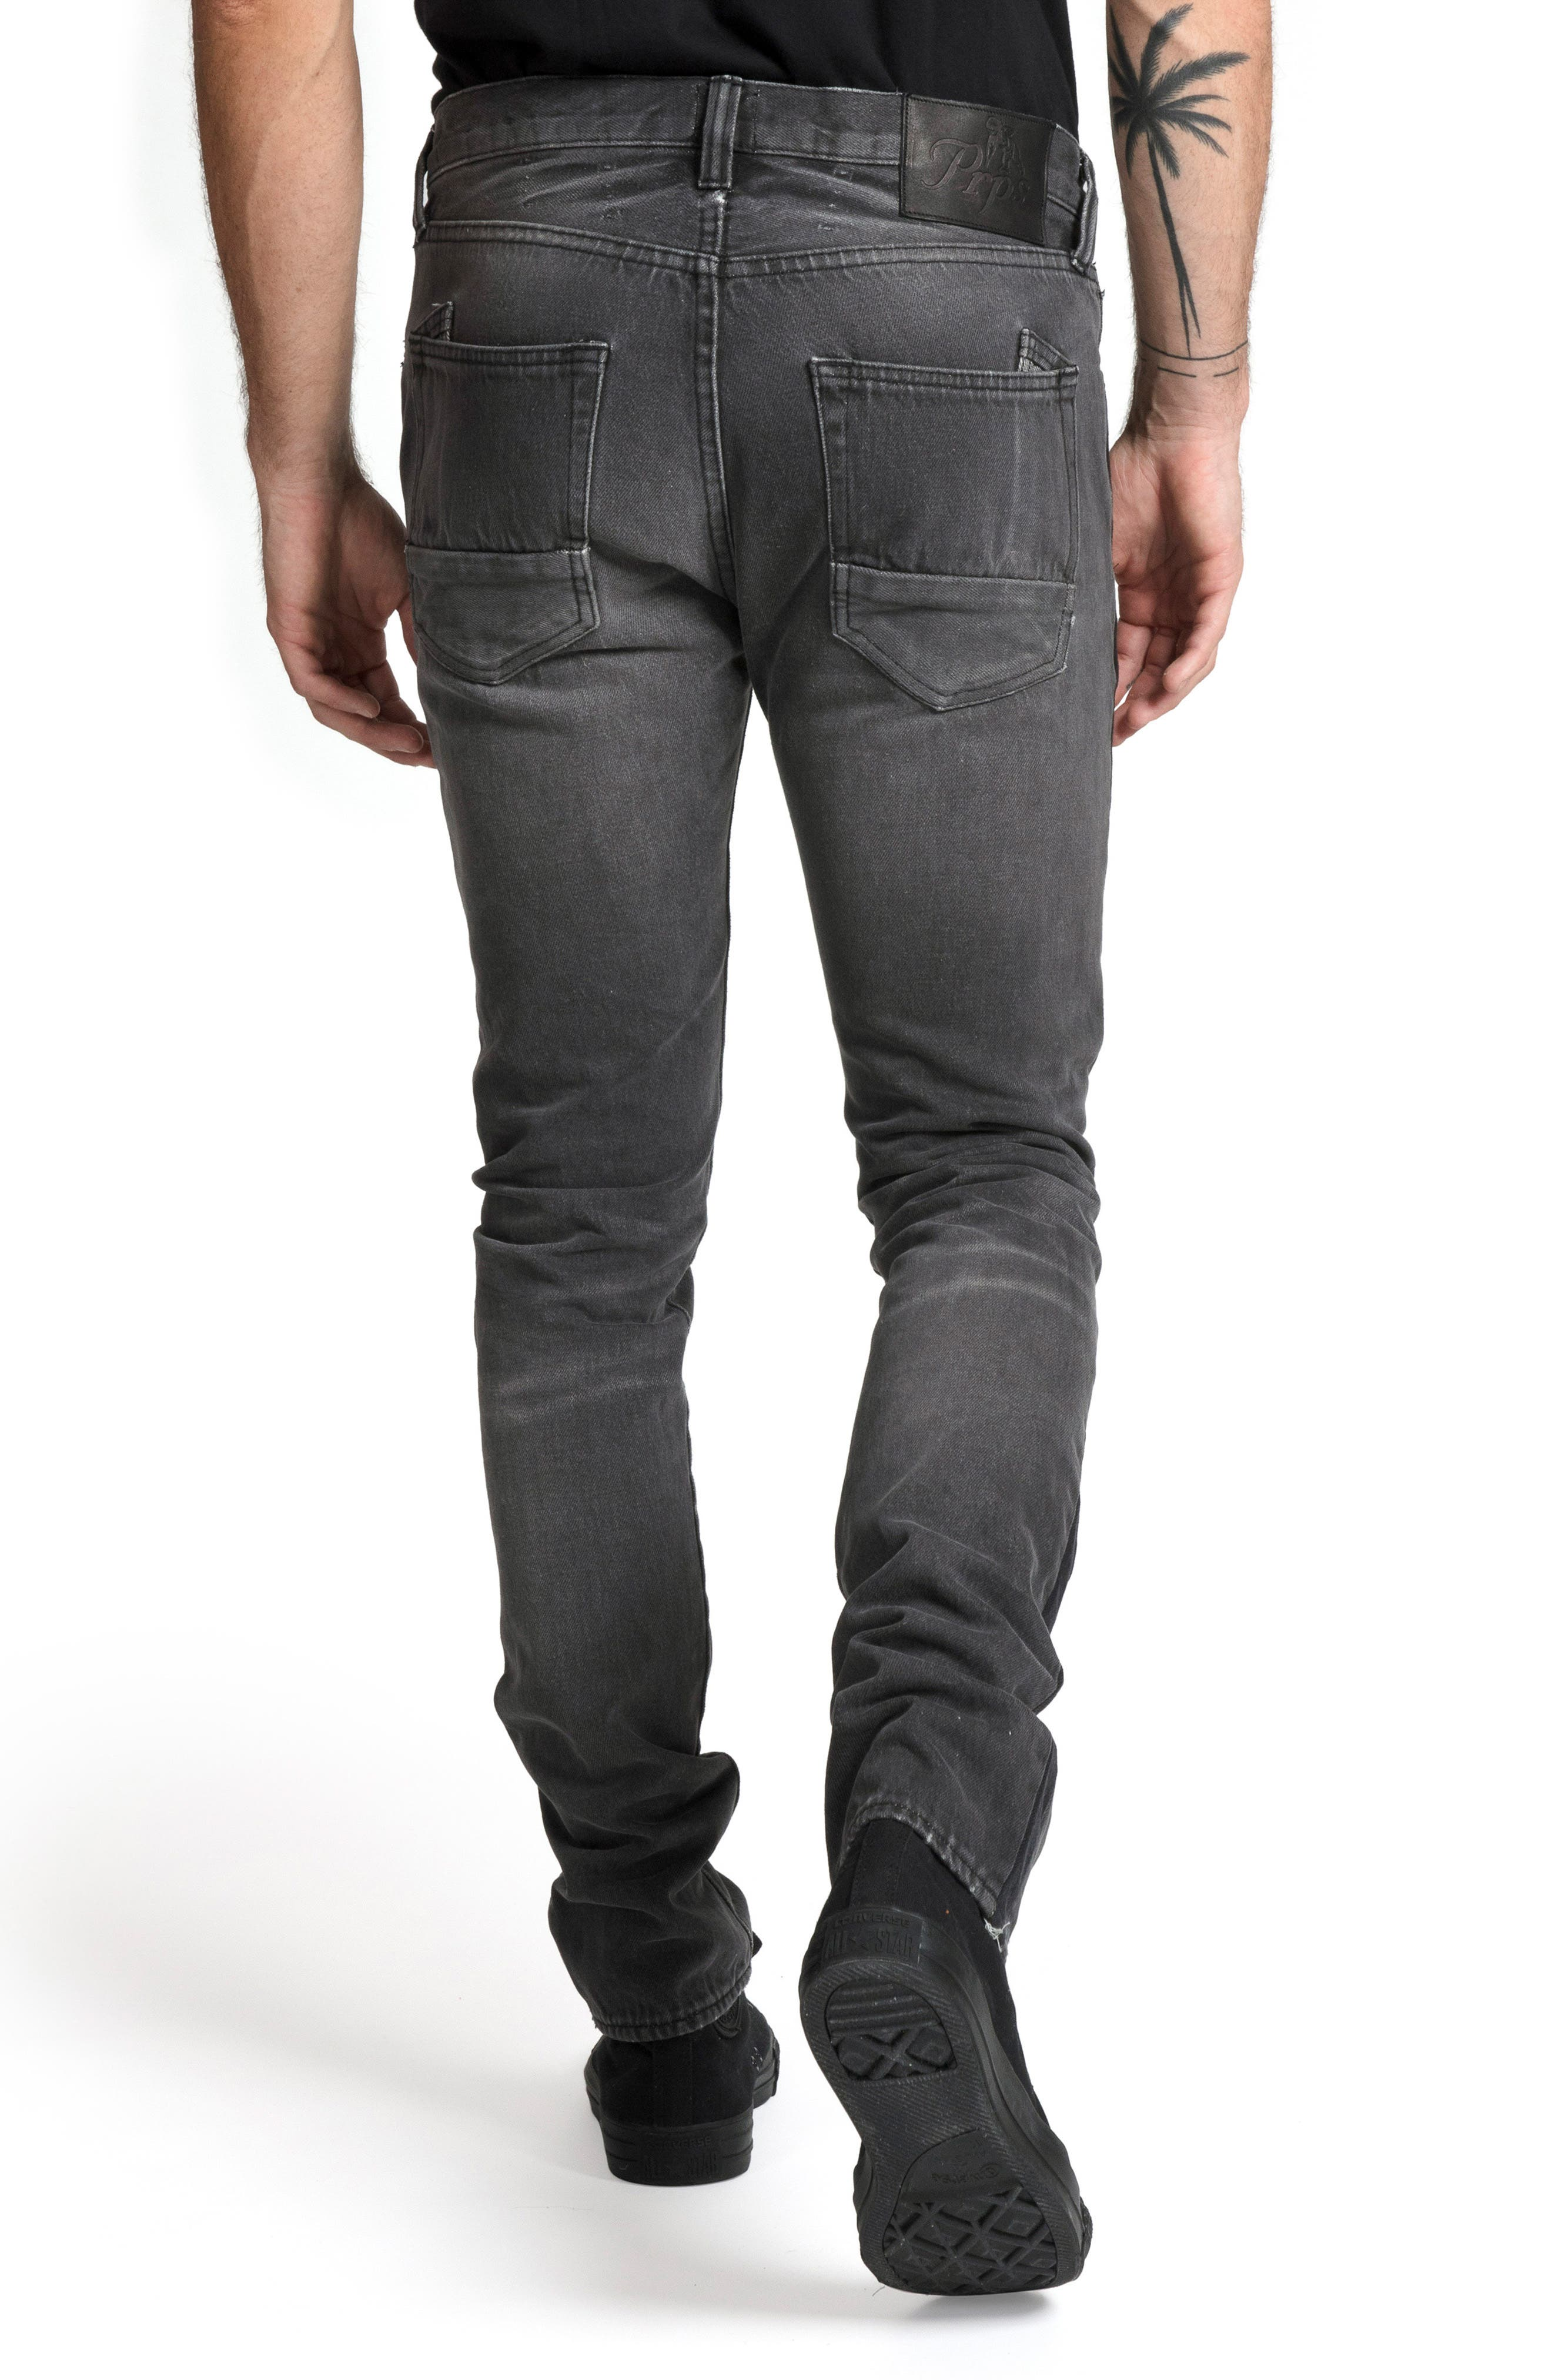 Le Sabre Slim Fit Jeans,                             Alternate thumbnail 2, color,                             ABHORRENT